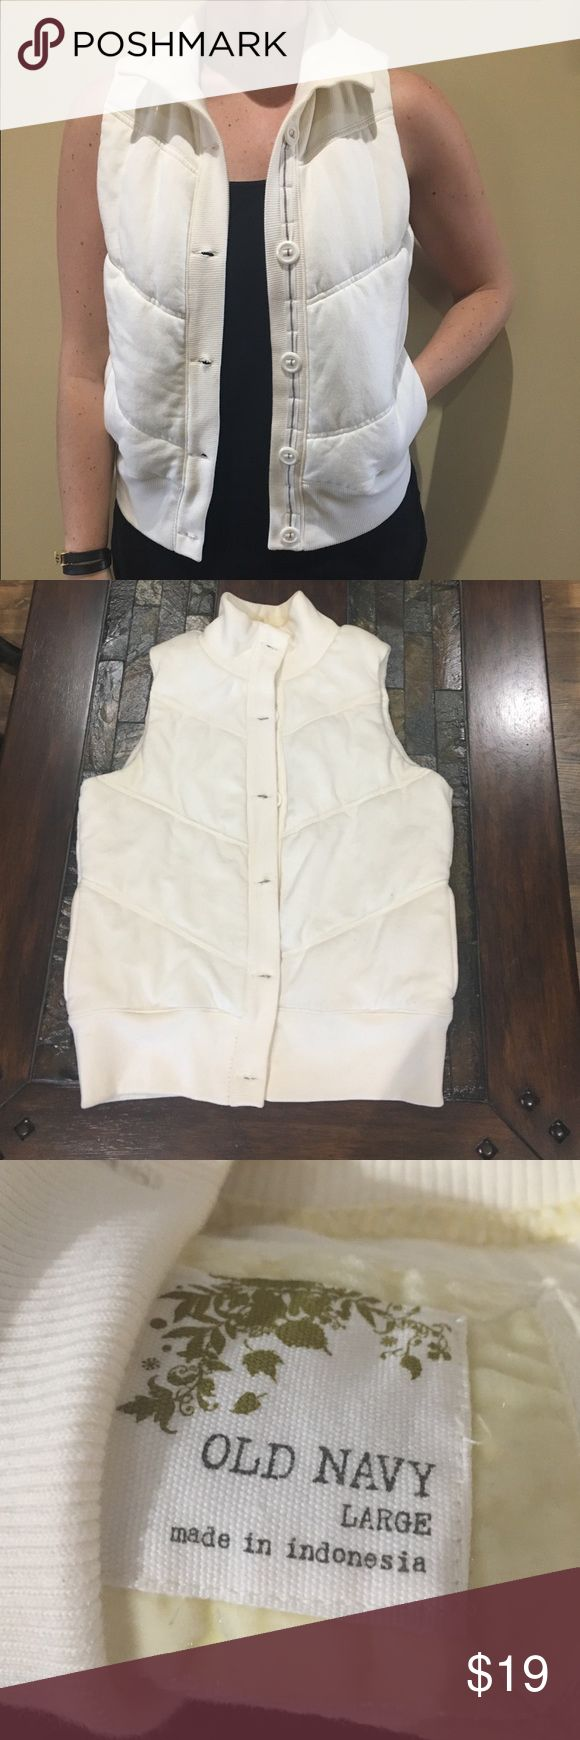 Old Navy vest! Grab this great neutral 6 button vest! It was gently worn and purchased at Old Navy! Old Navy Jackets & Coats Vests